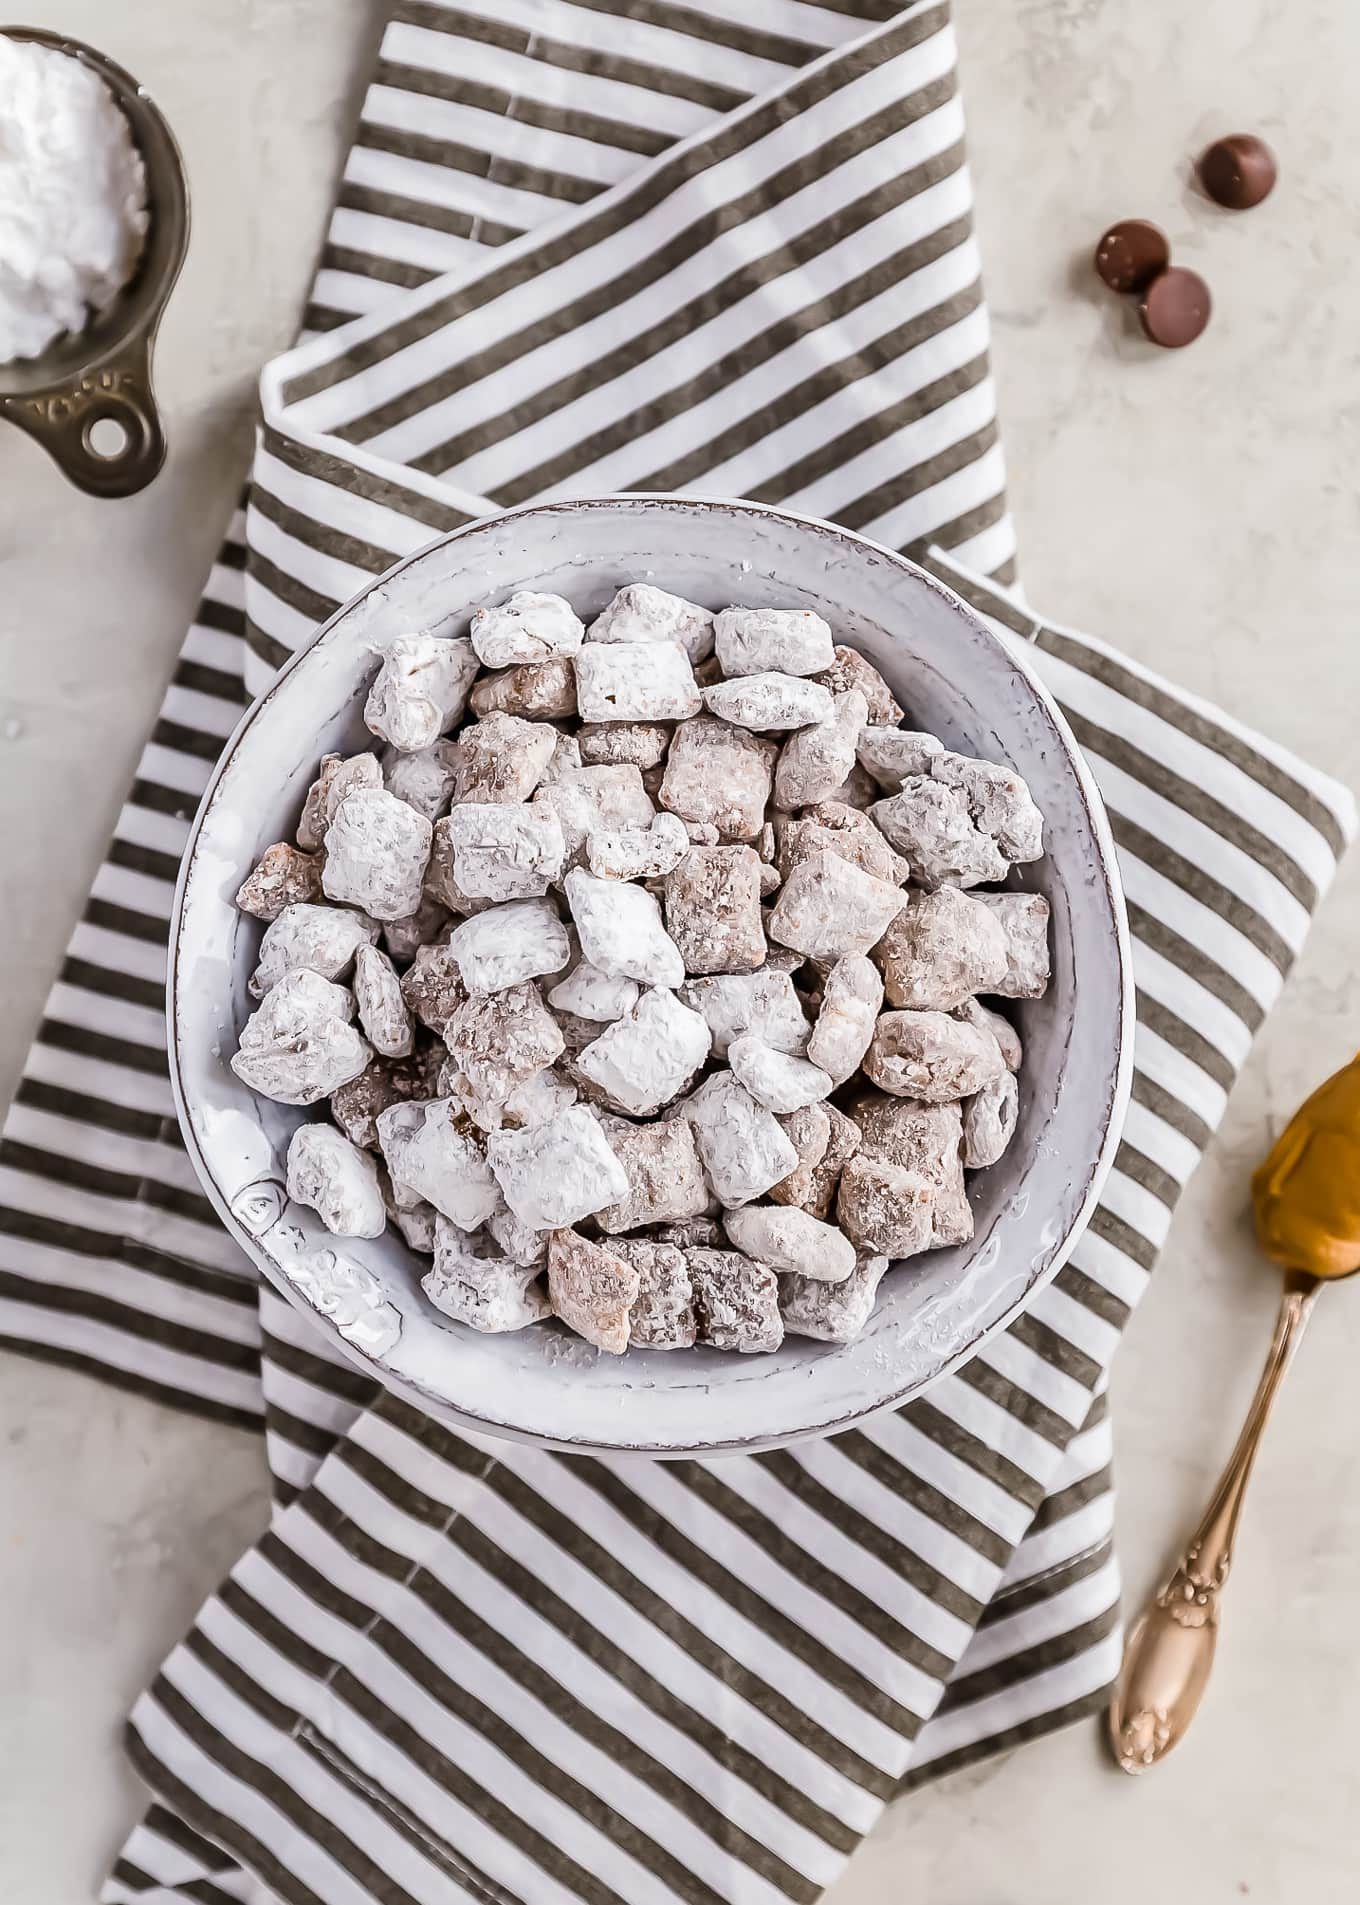 a bowl of puppy chow sitting on a striped dish towel